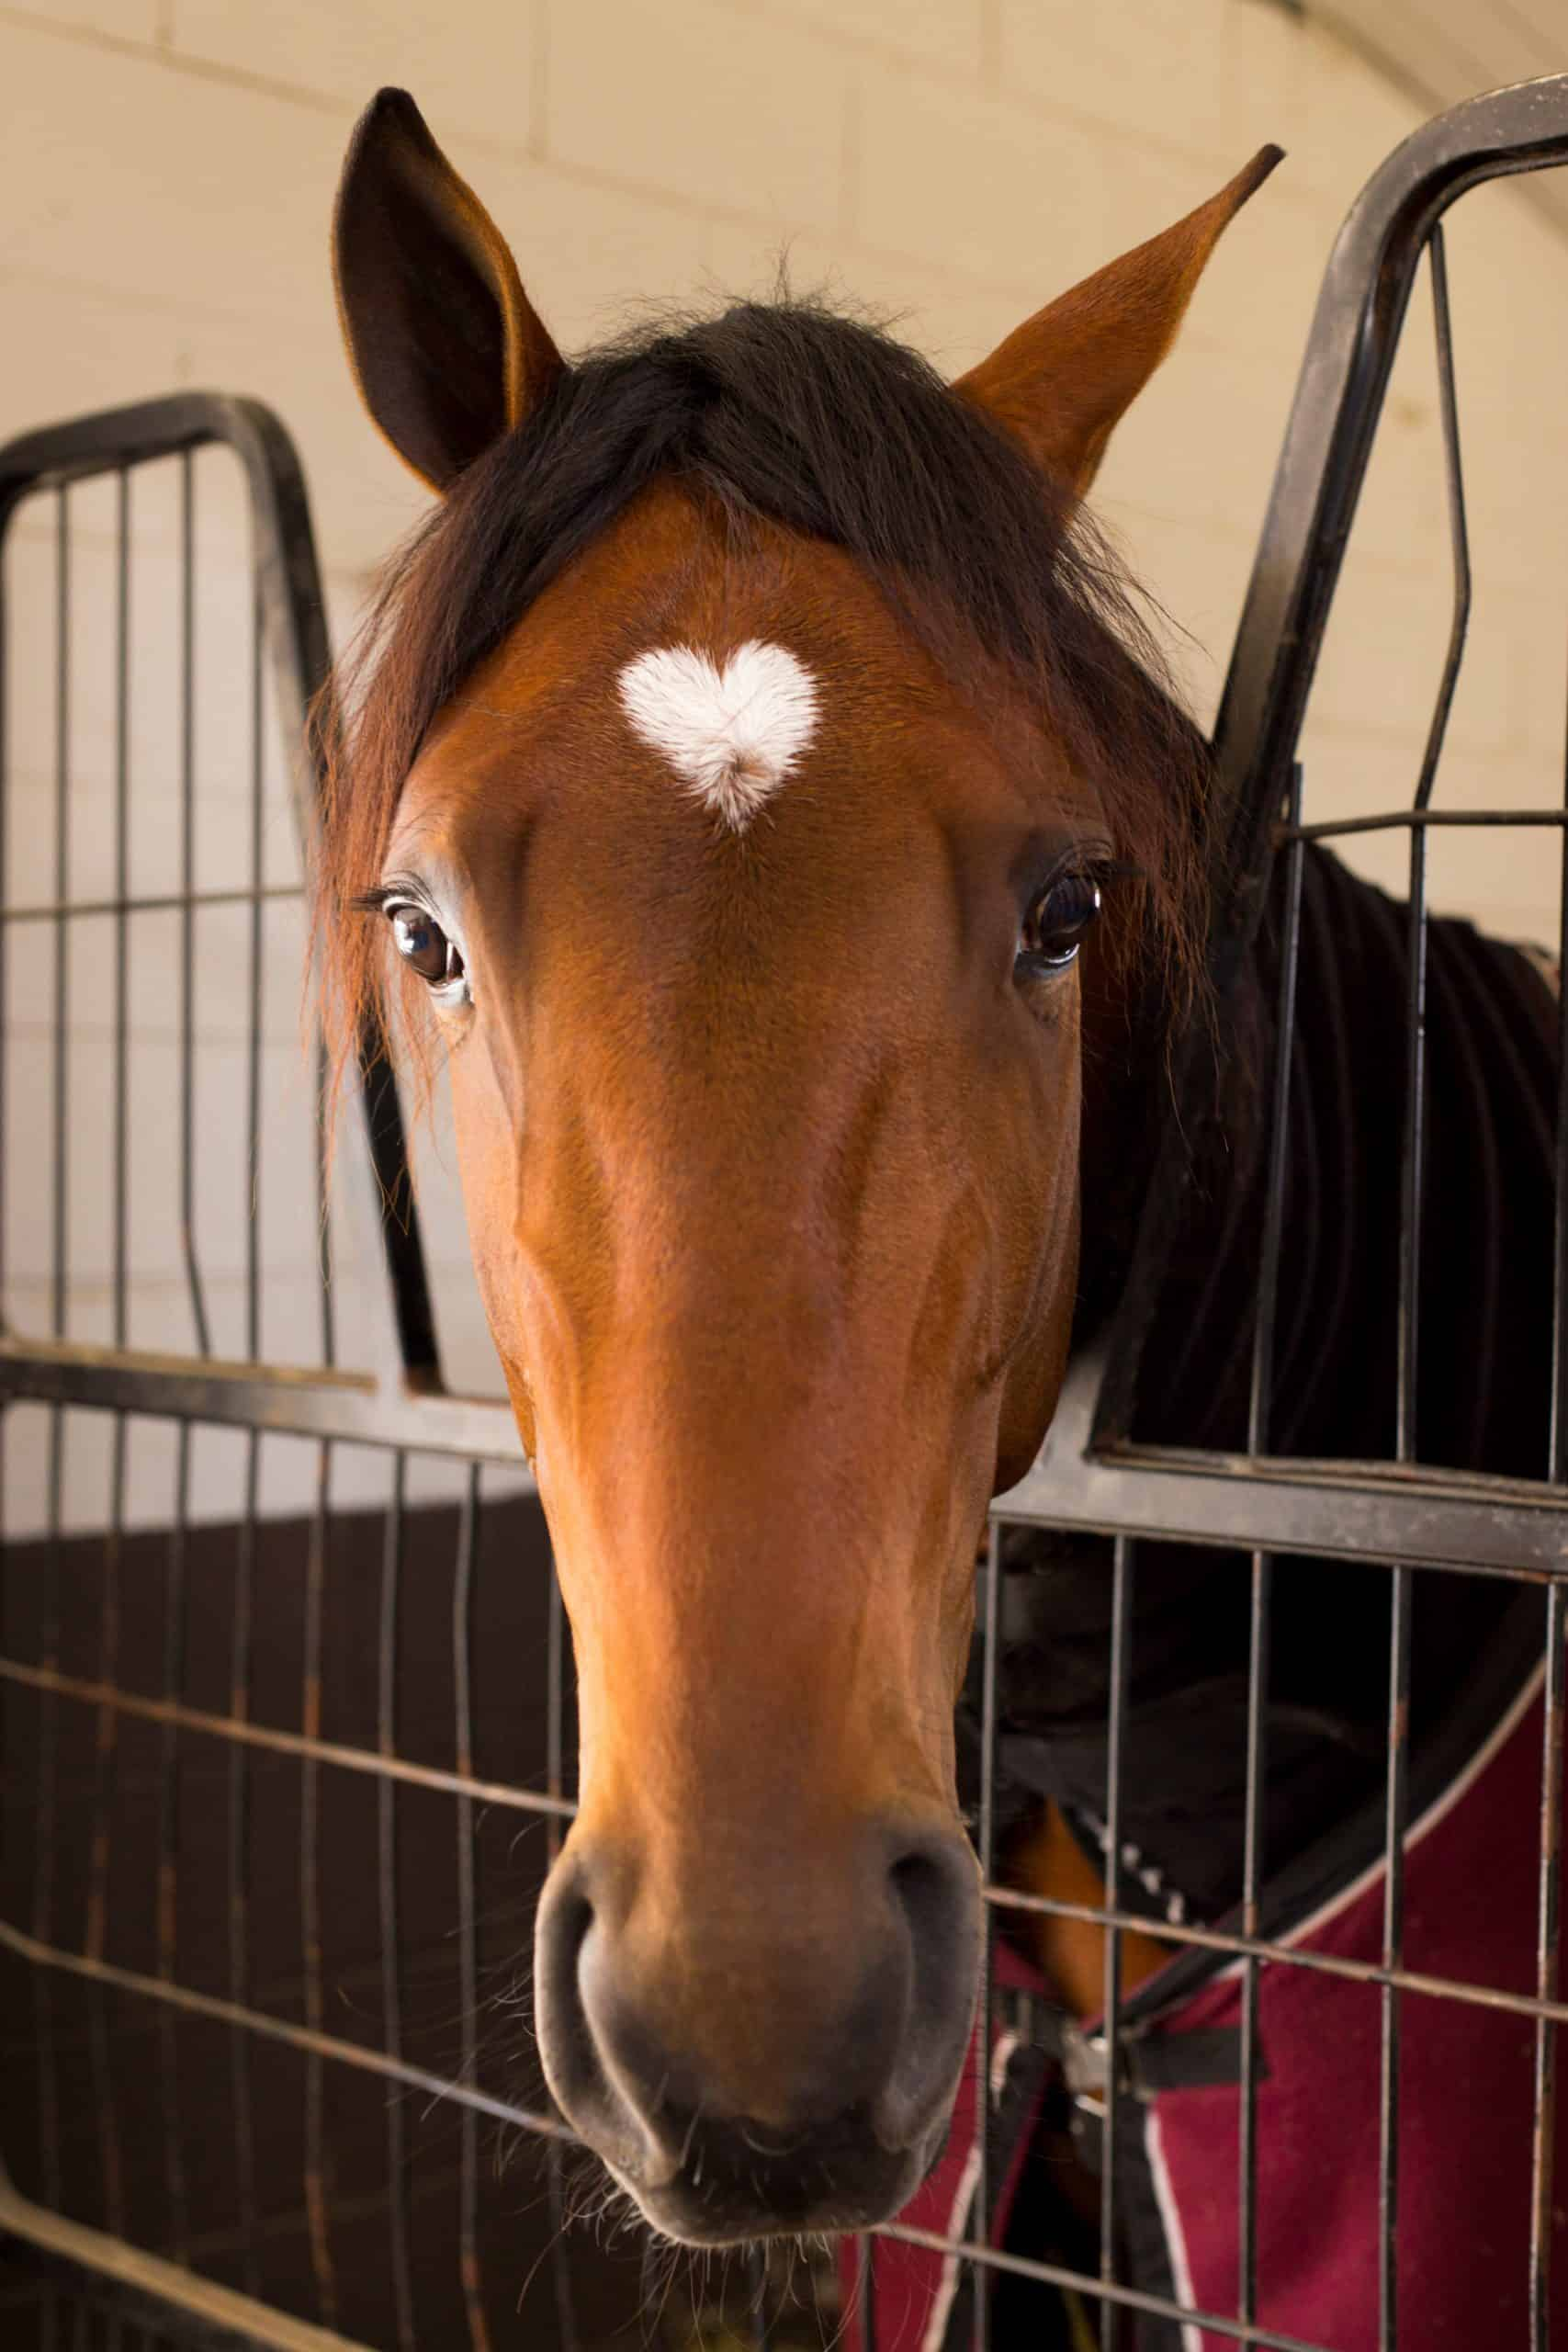 Horse with love marking on forehead